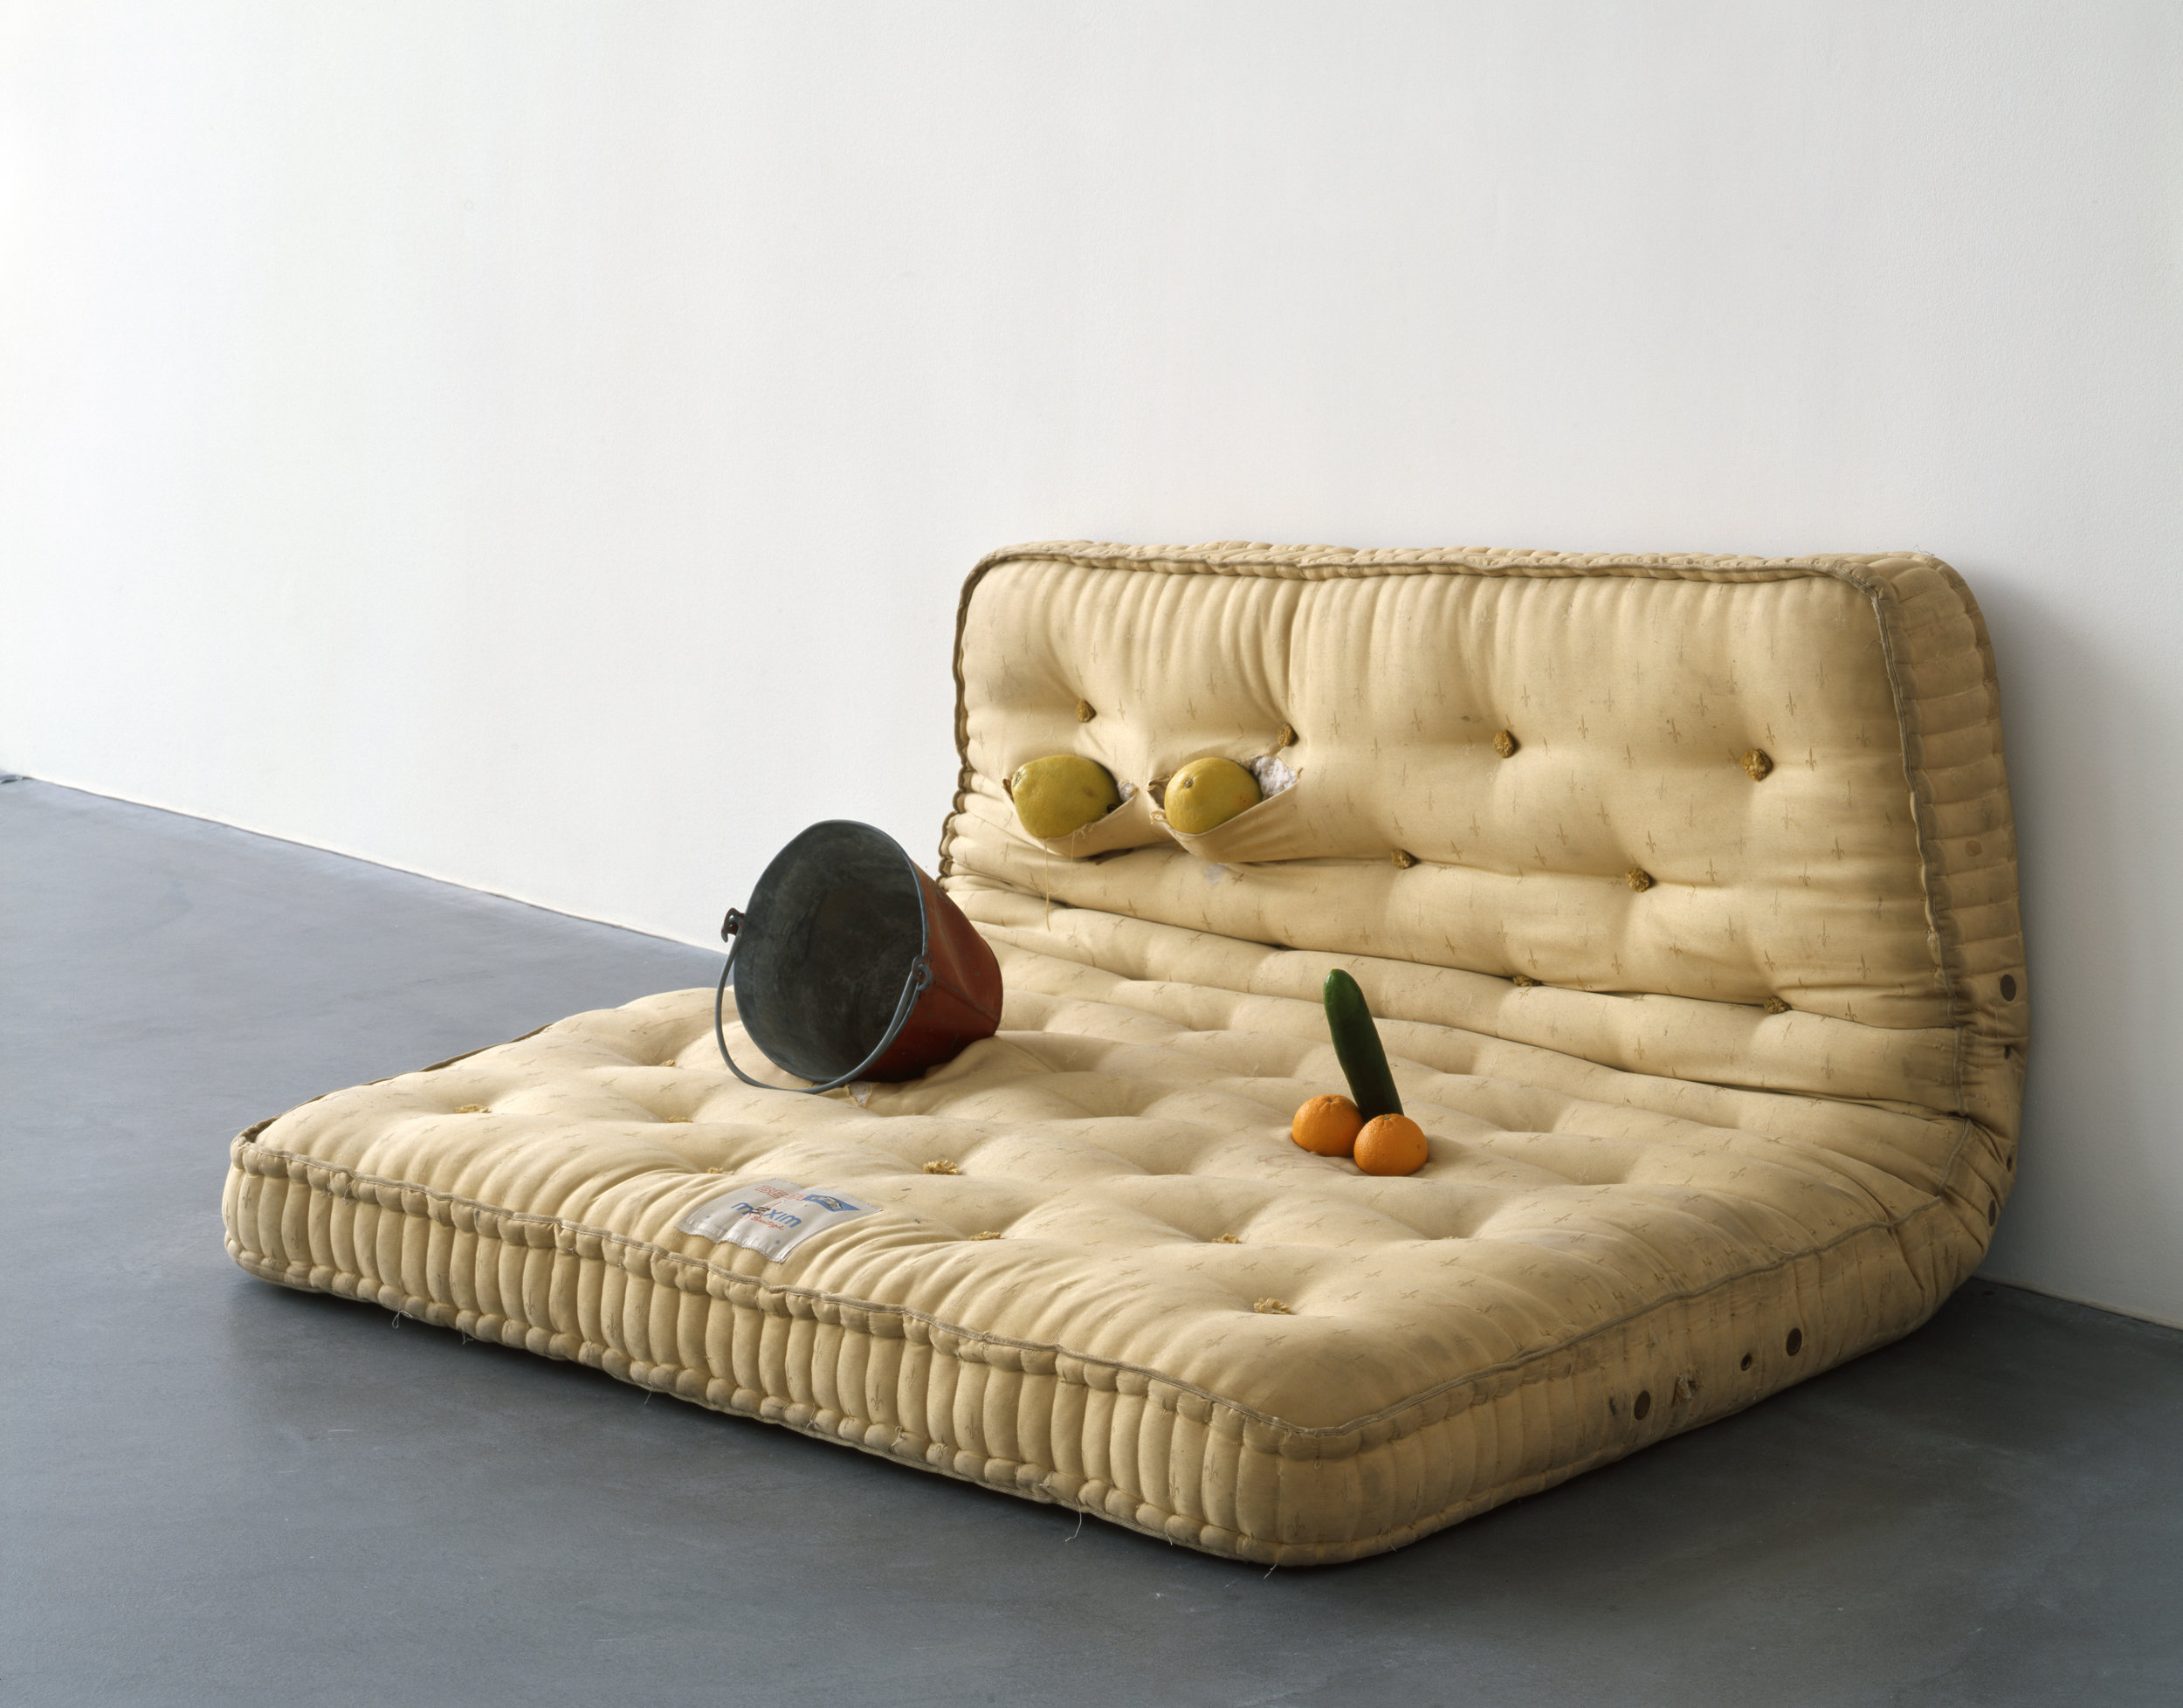 Au Naturel, 1994 Mattress, melons, oranges, cucumber, and bucket 33 1/8 x 66 1/8 x 57 in (84 x 168.8 x 144.8 cm) Private collection